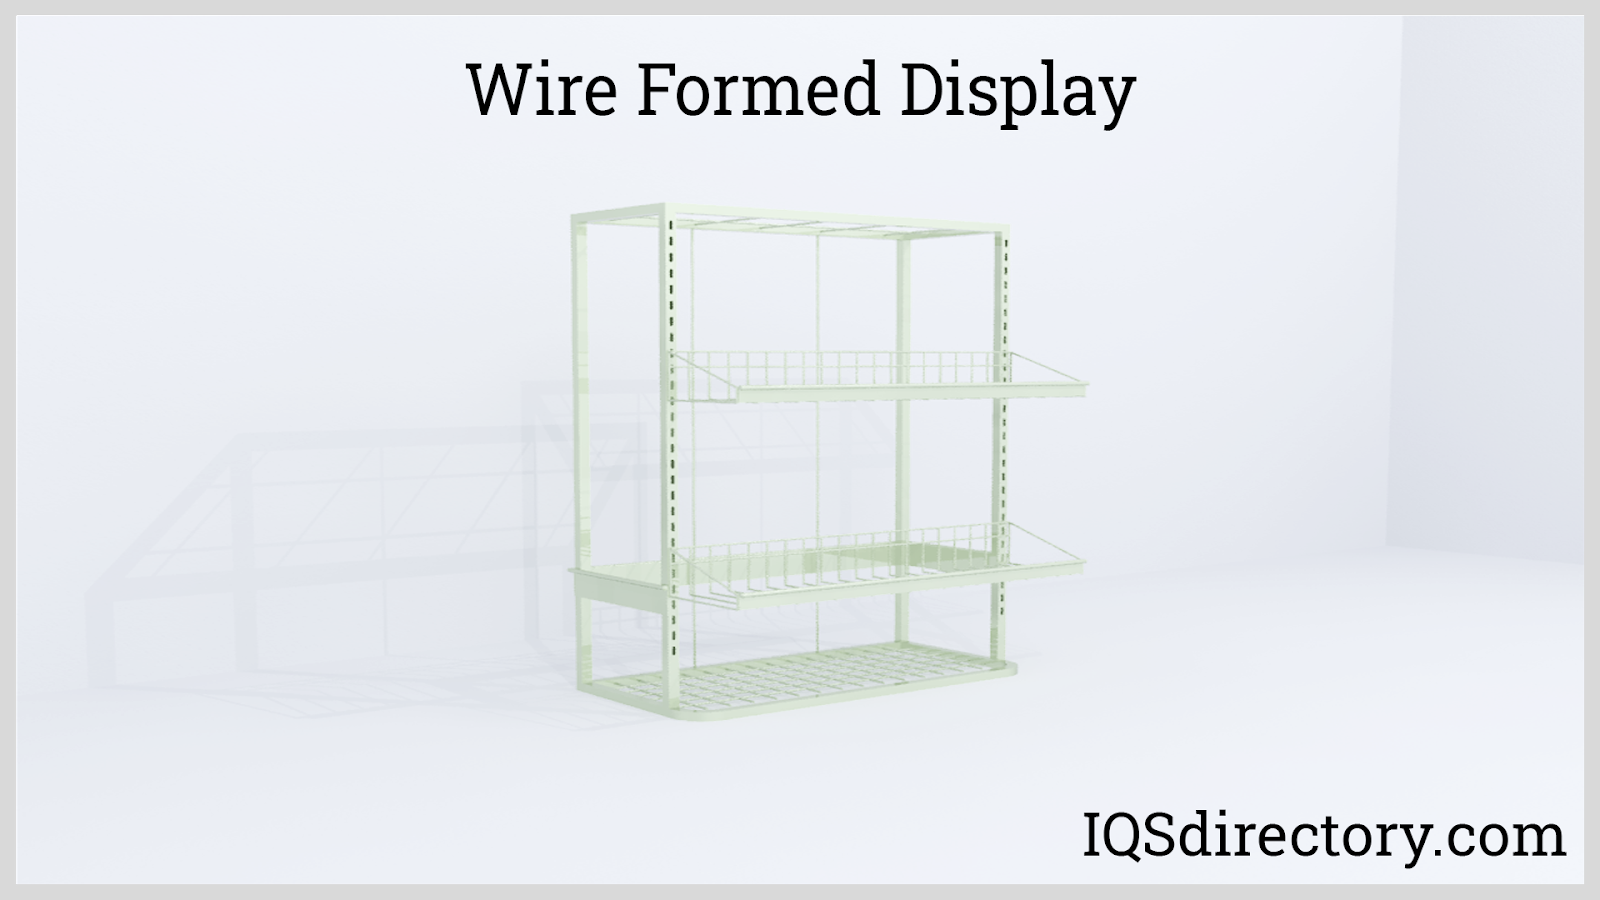 Wire Formed Display